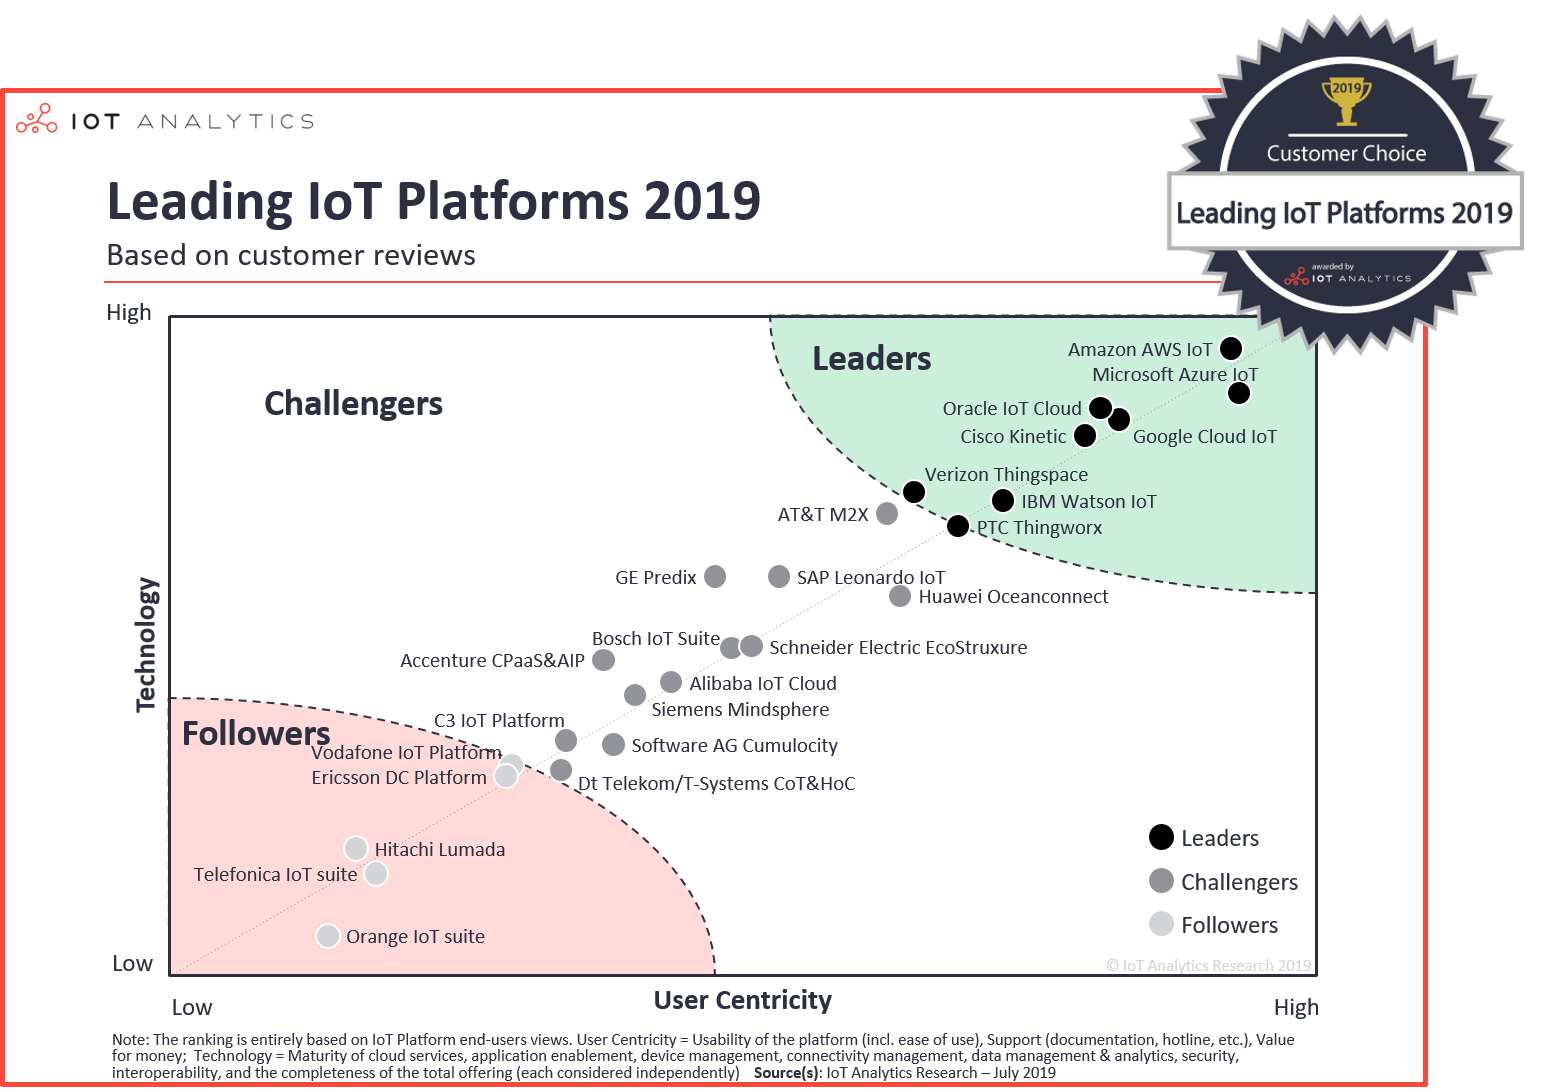 Best IoT Platforms: Leading IoT Platforms 2019